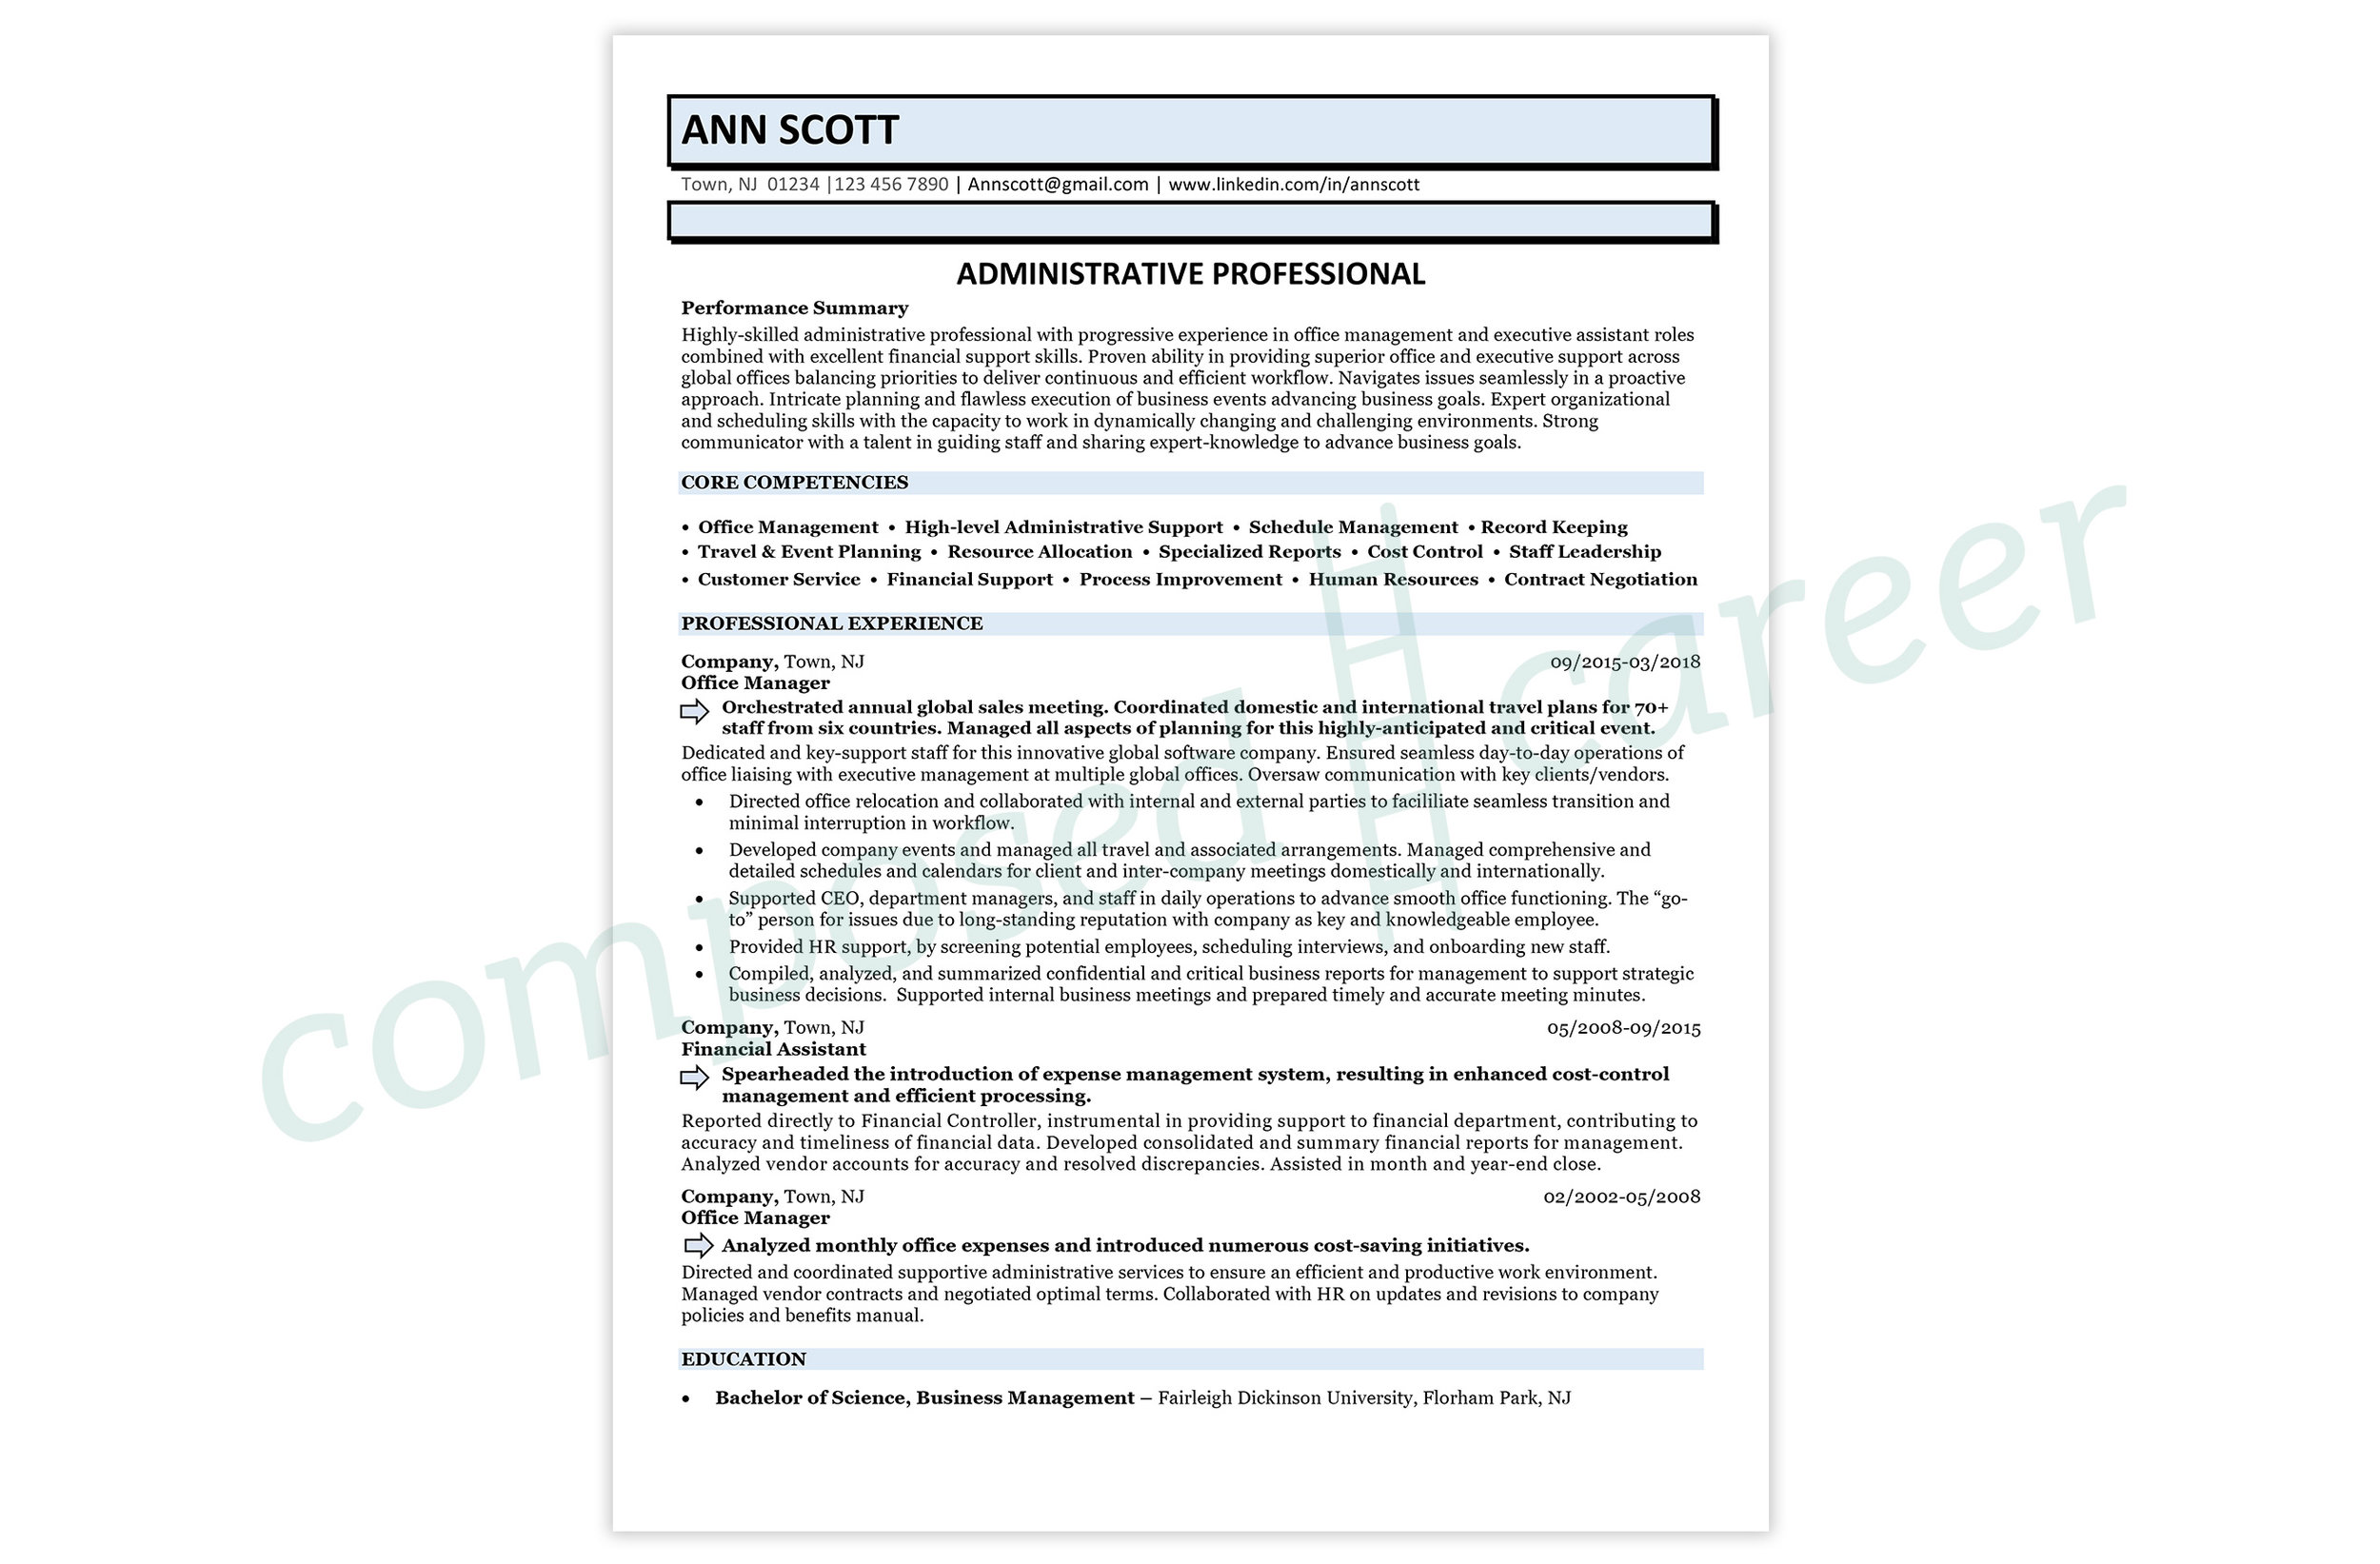 Sample - Administrative Professional